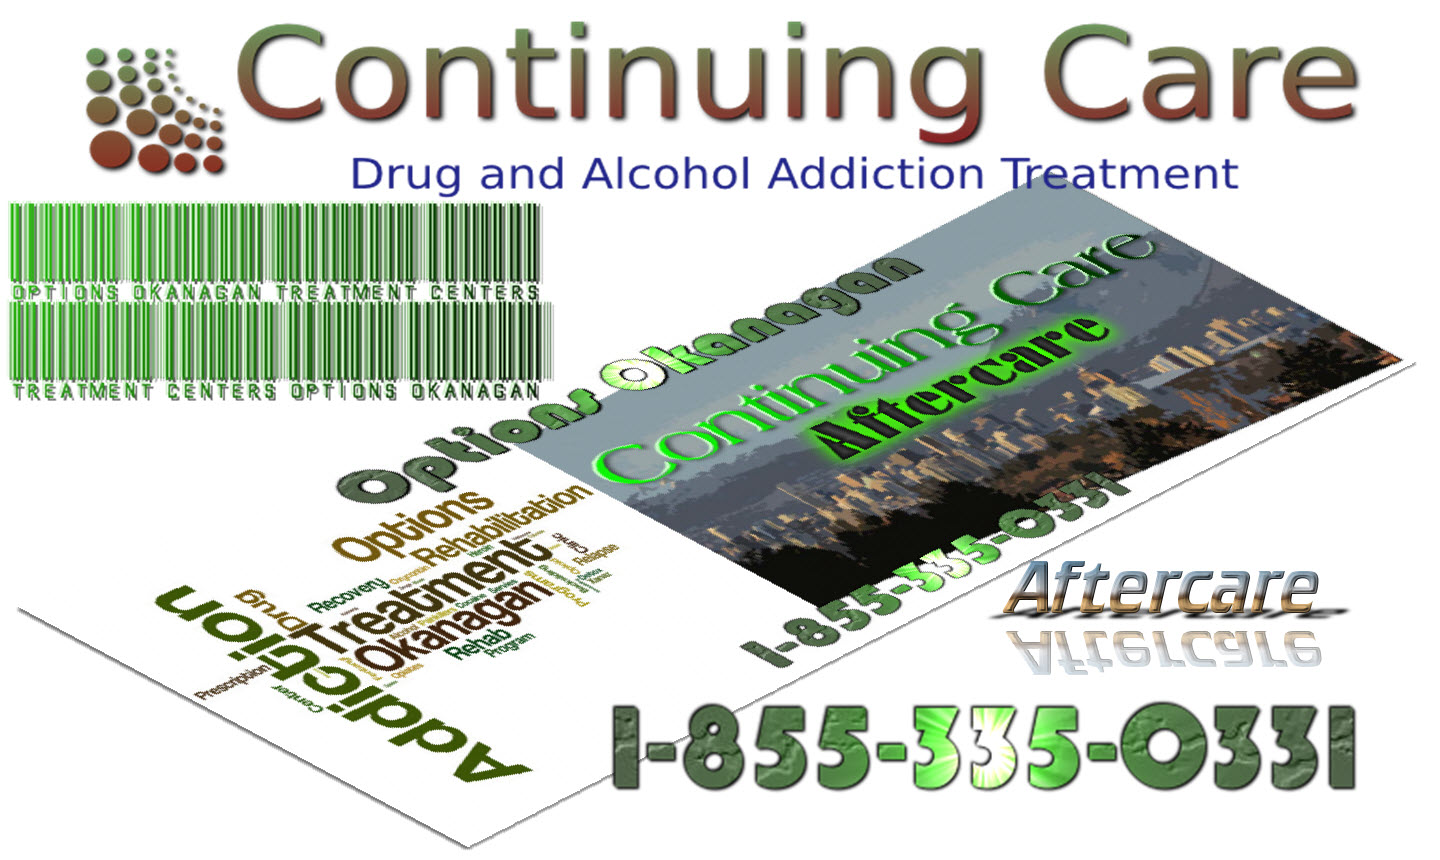 Opiate addiction - Aftercare and Continuing Care in Vancouver